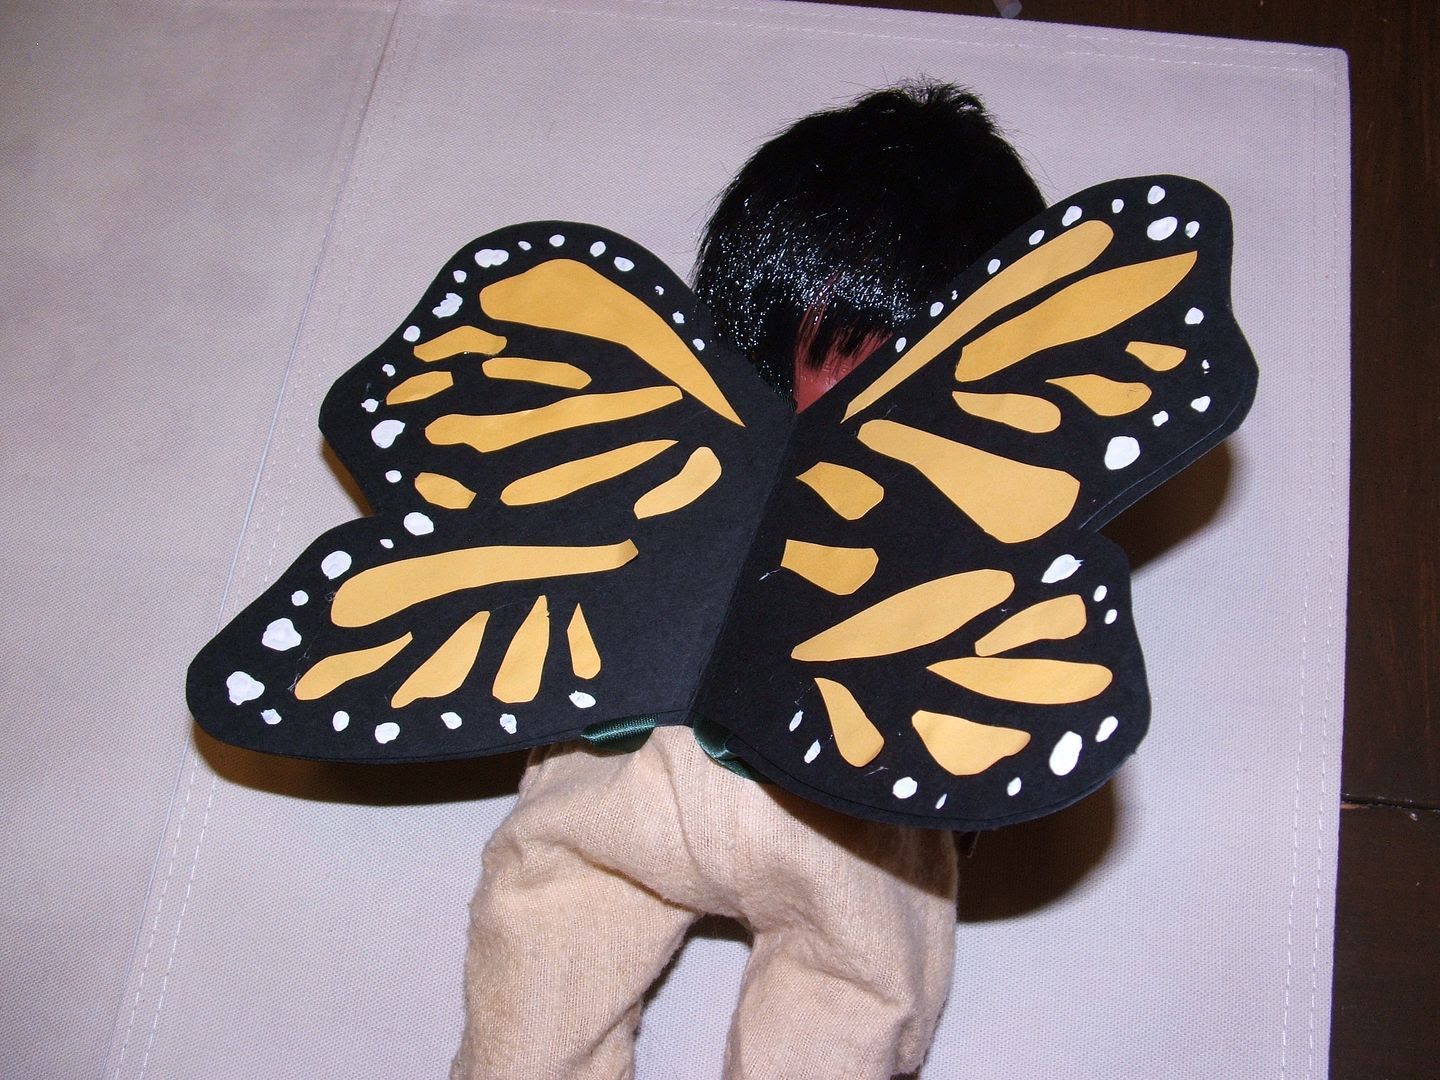 Butterfly Costume by Angie Ouellette-Tower for godsgrowinggarden.com photo 019_zpsddc18708.jpg